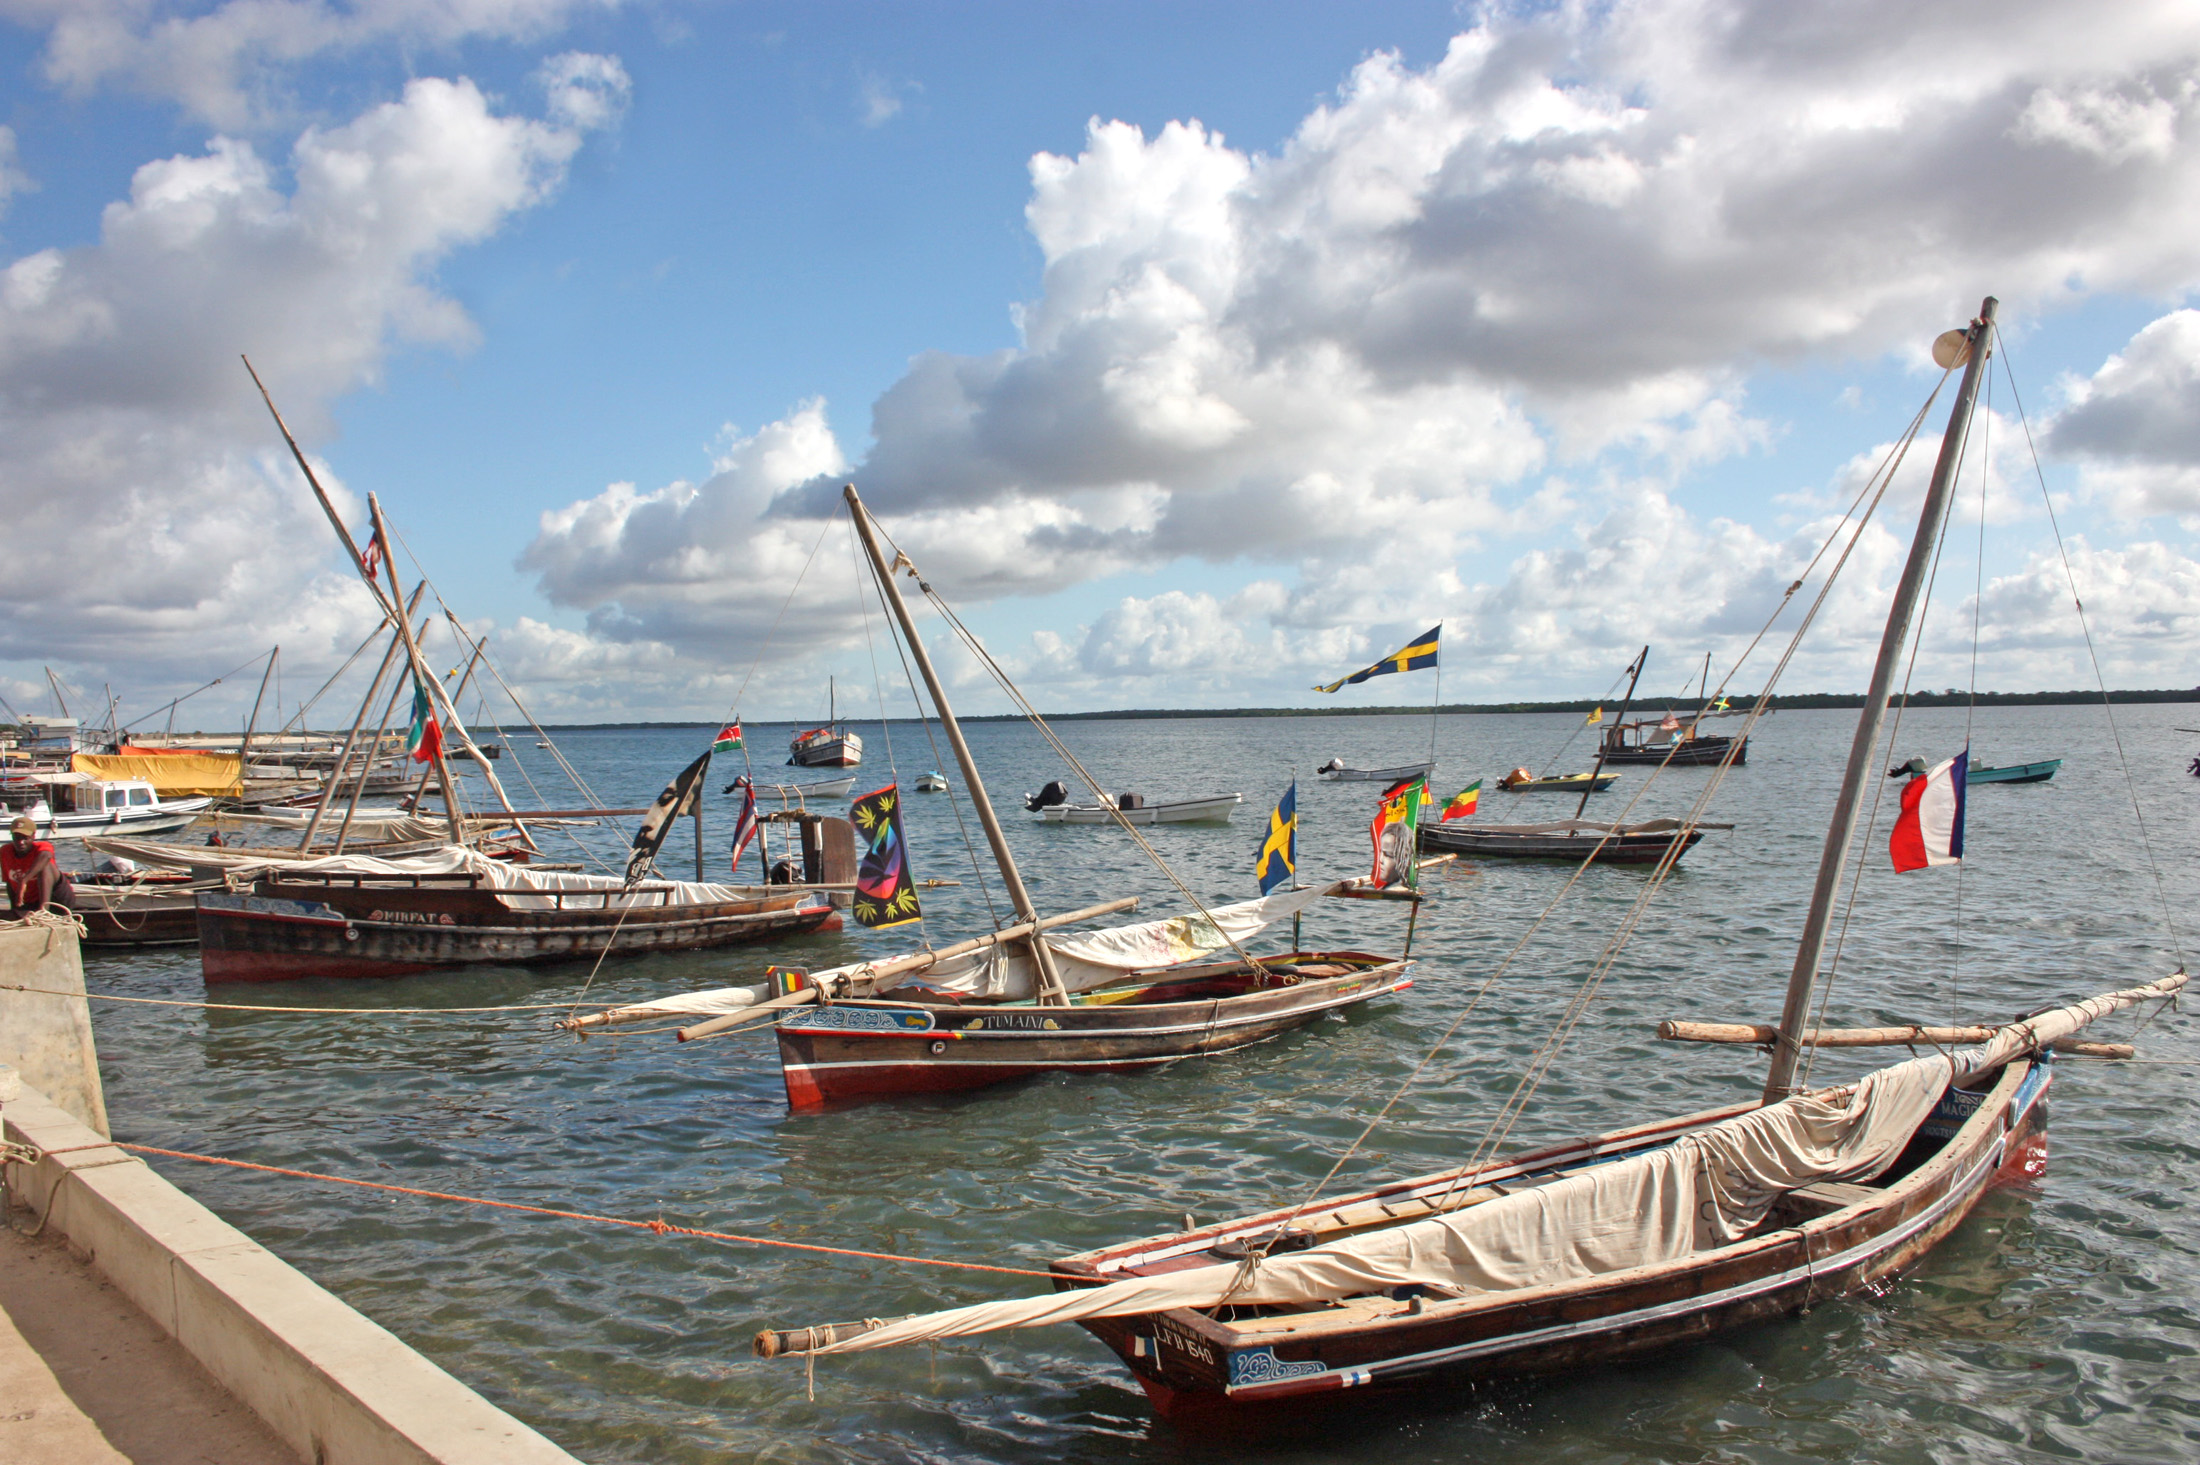 Fishermen in Lamu say the proposed construction of a sea port there threatens their livelihood